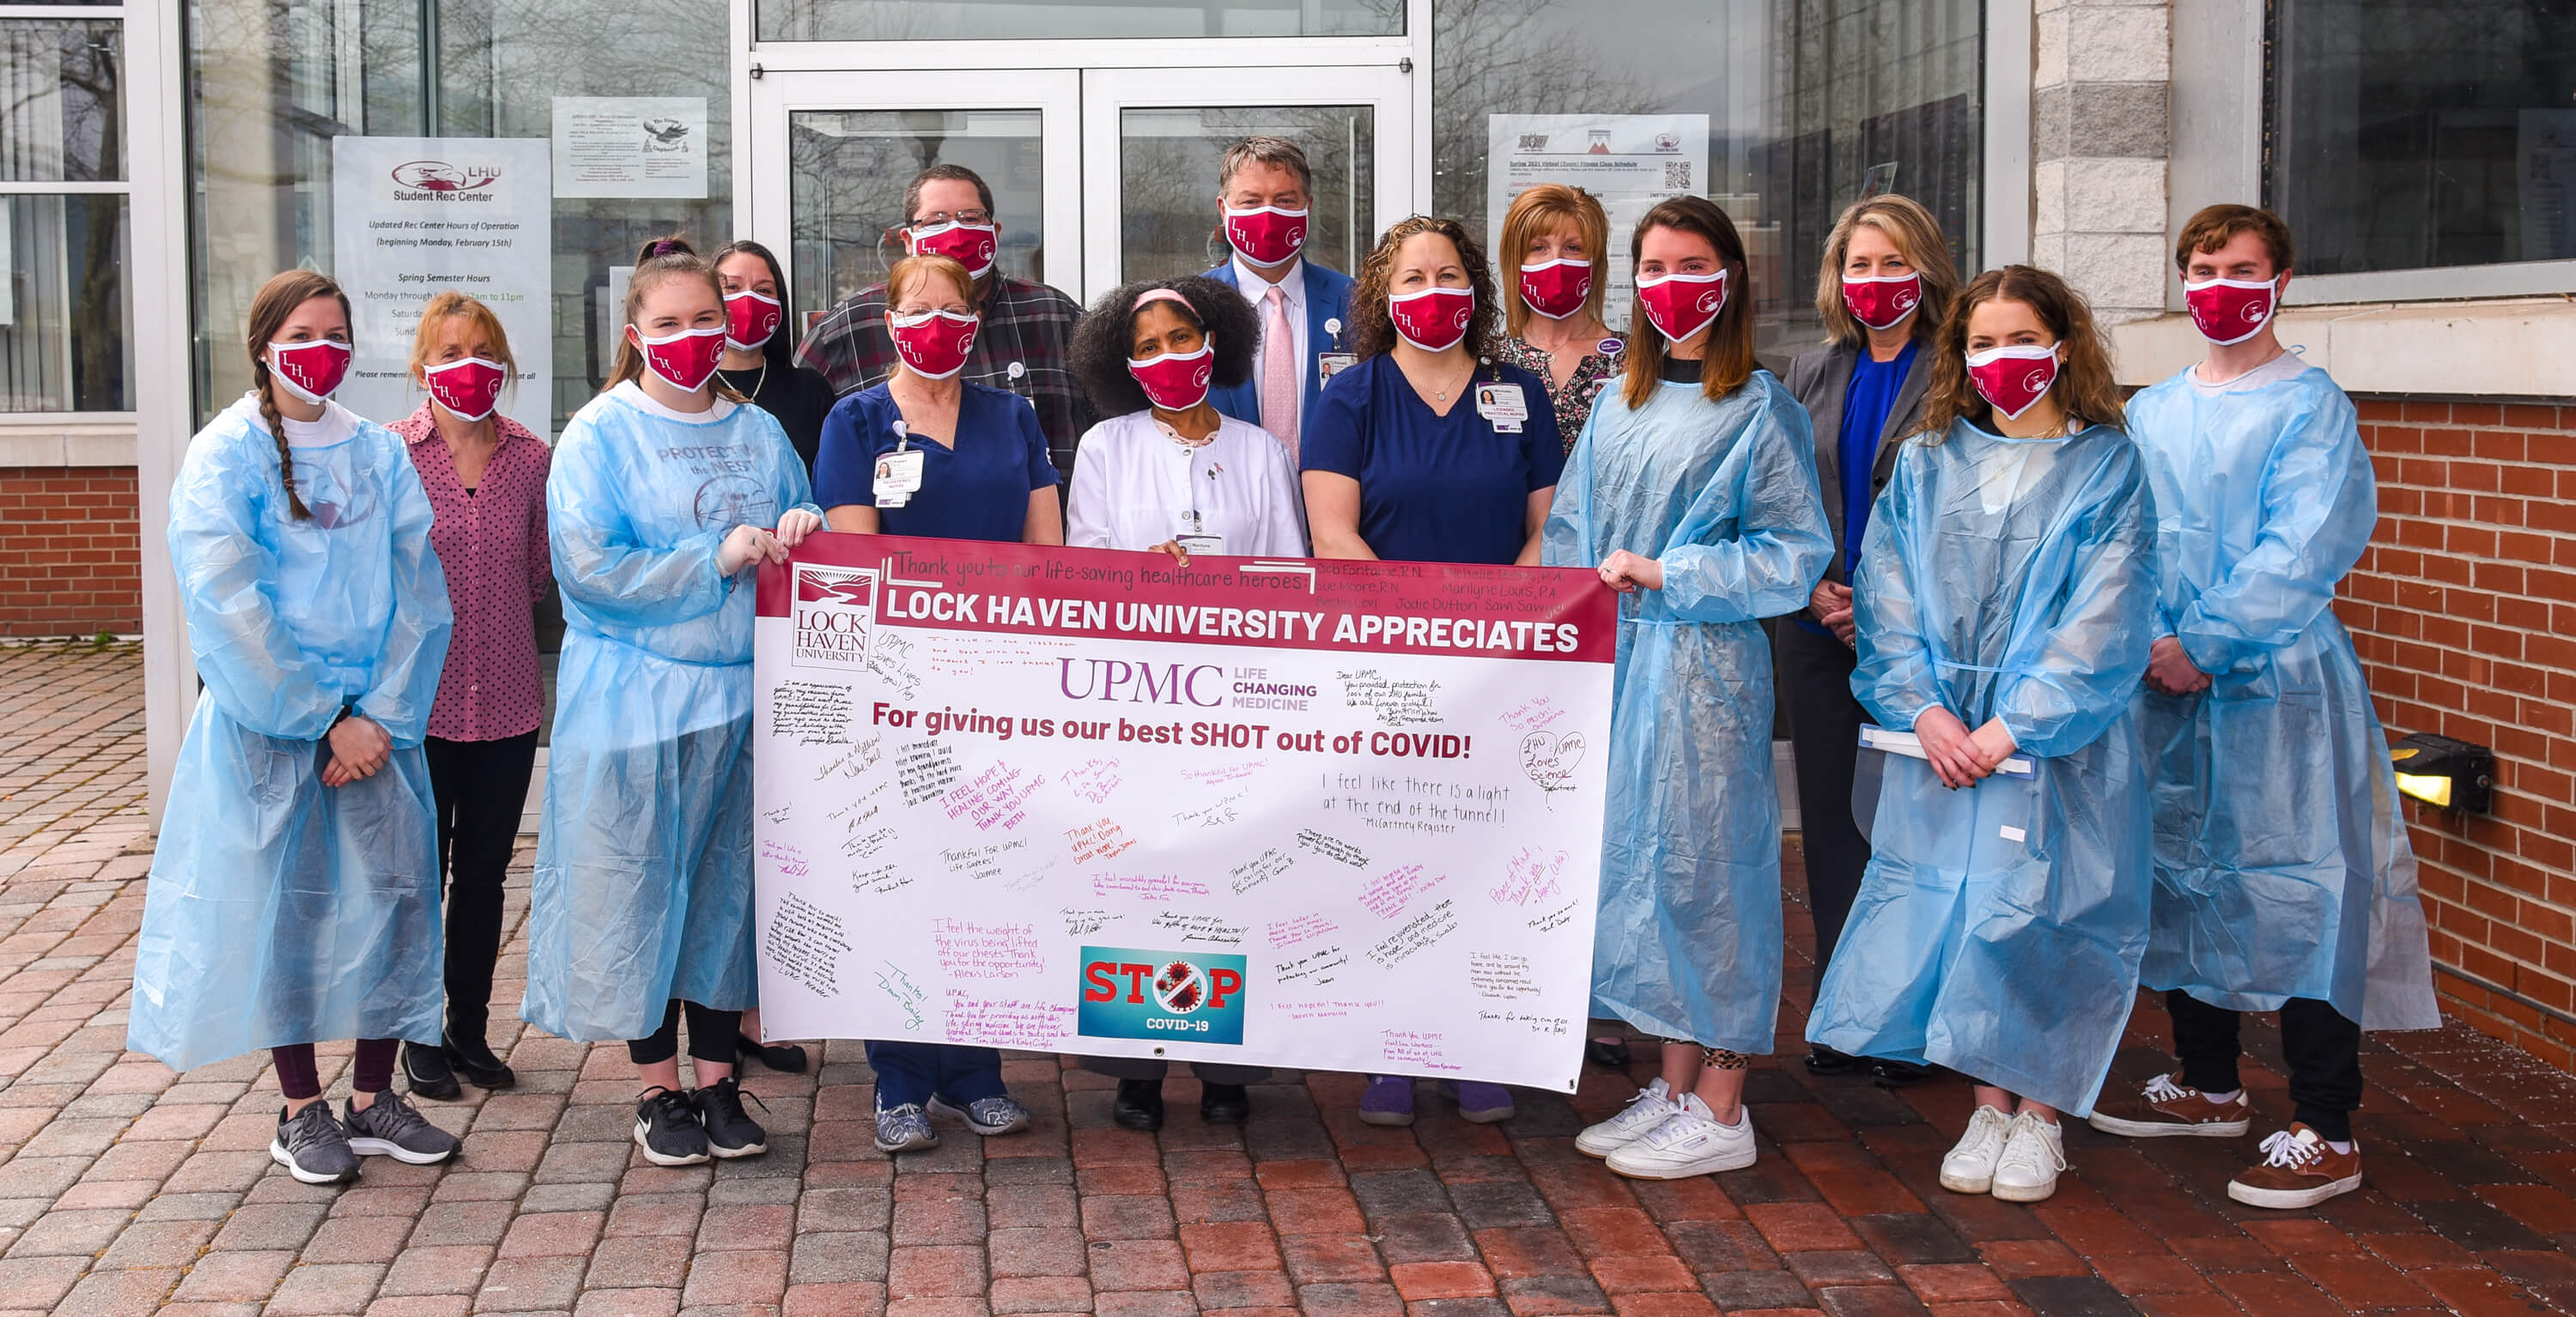 Lock Haven University recently presented a banner to UPMC with signatures and quotes from students, faculty and staff.